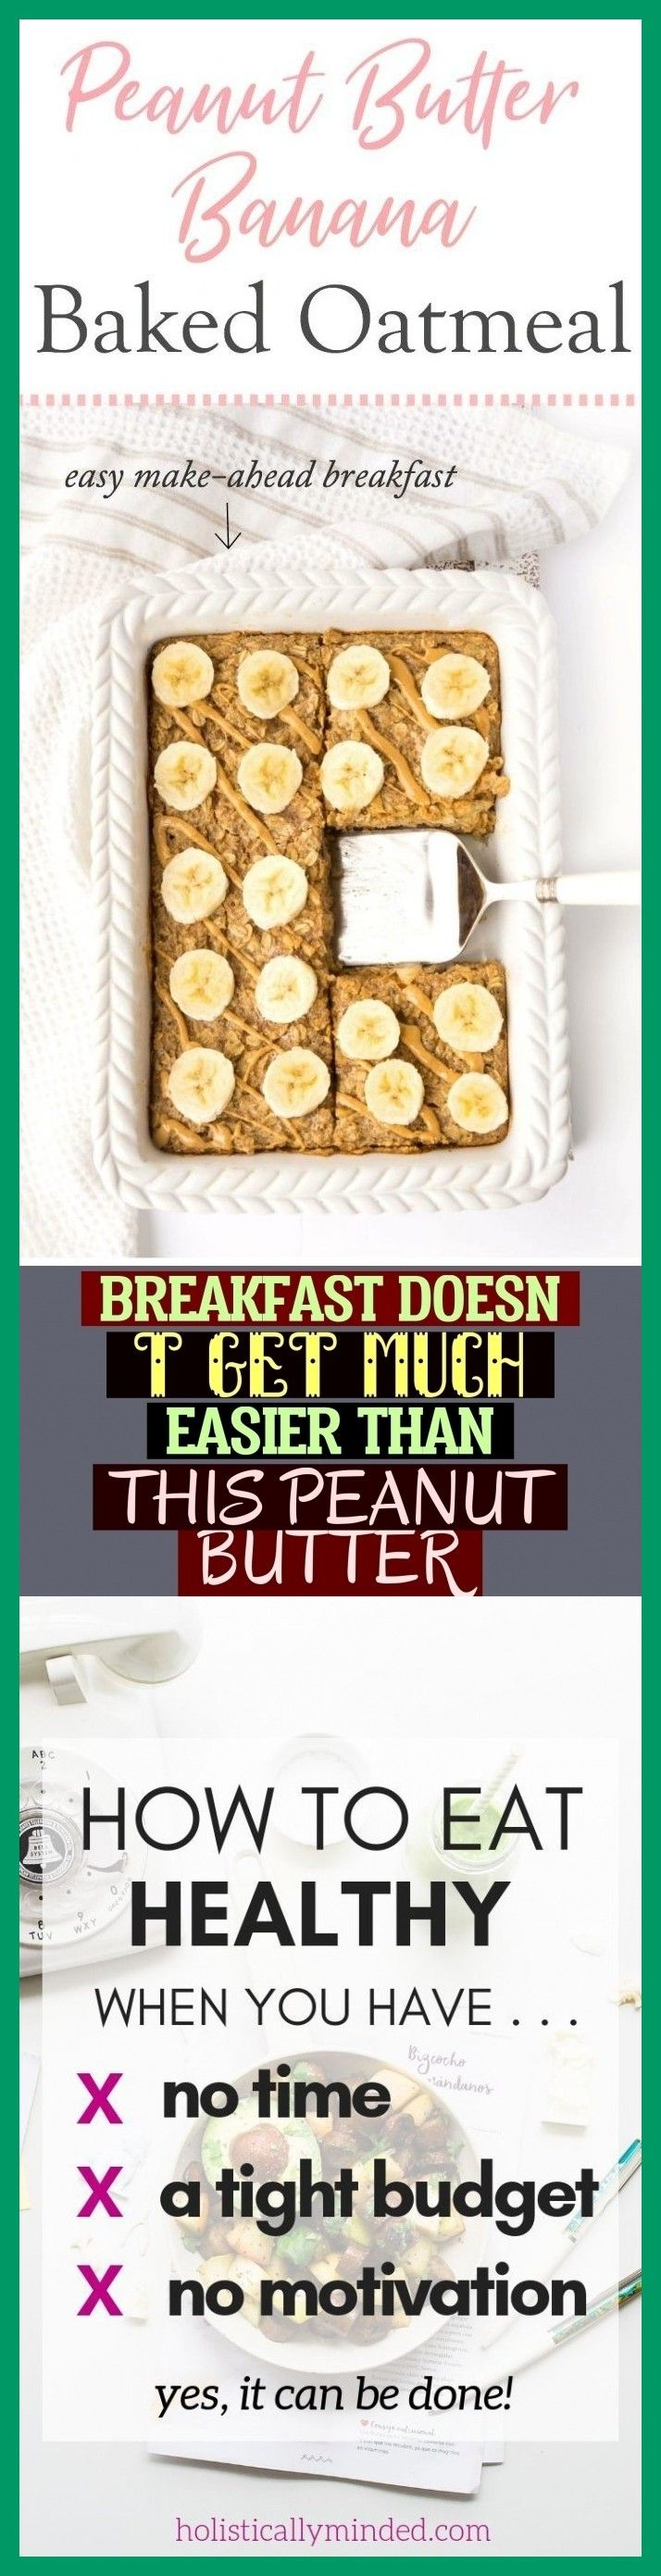 Breakfast Doesn T Get Much Easier Than This Peanut Butter – das frühstück ist …  – Healthy Living 2020